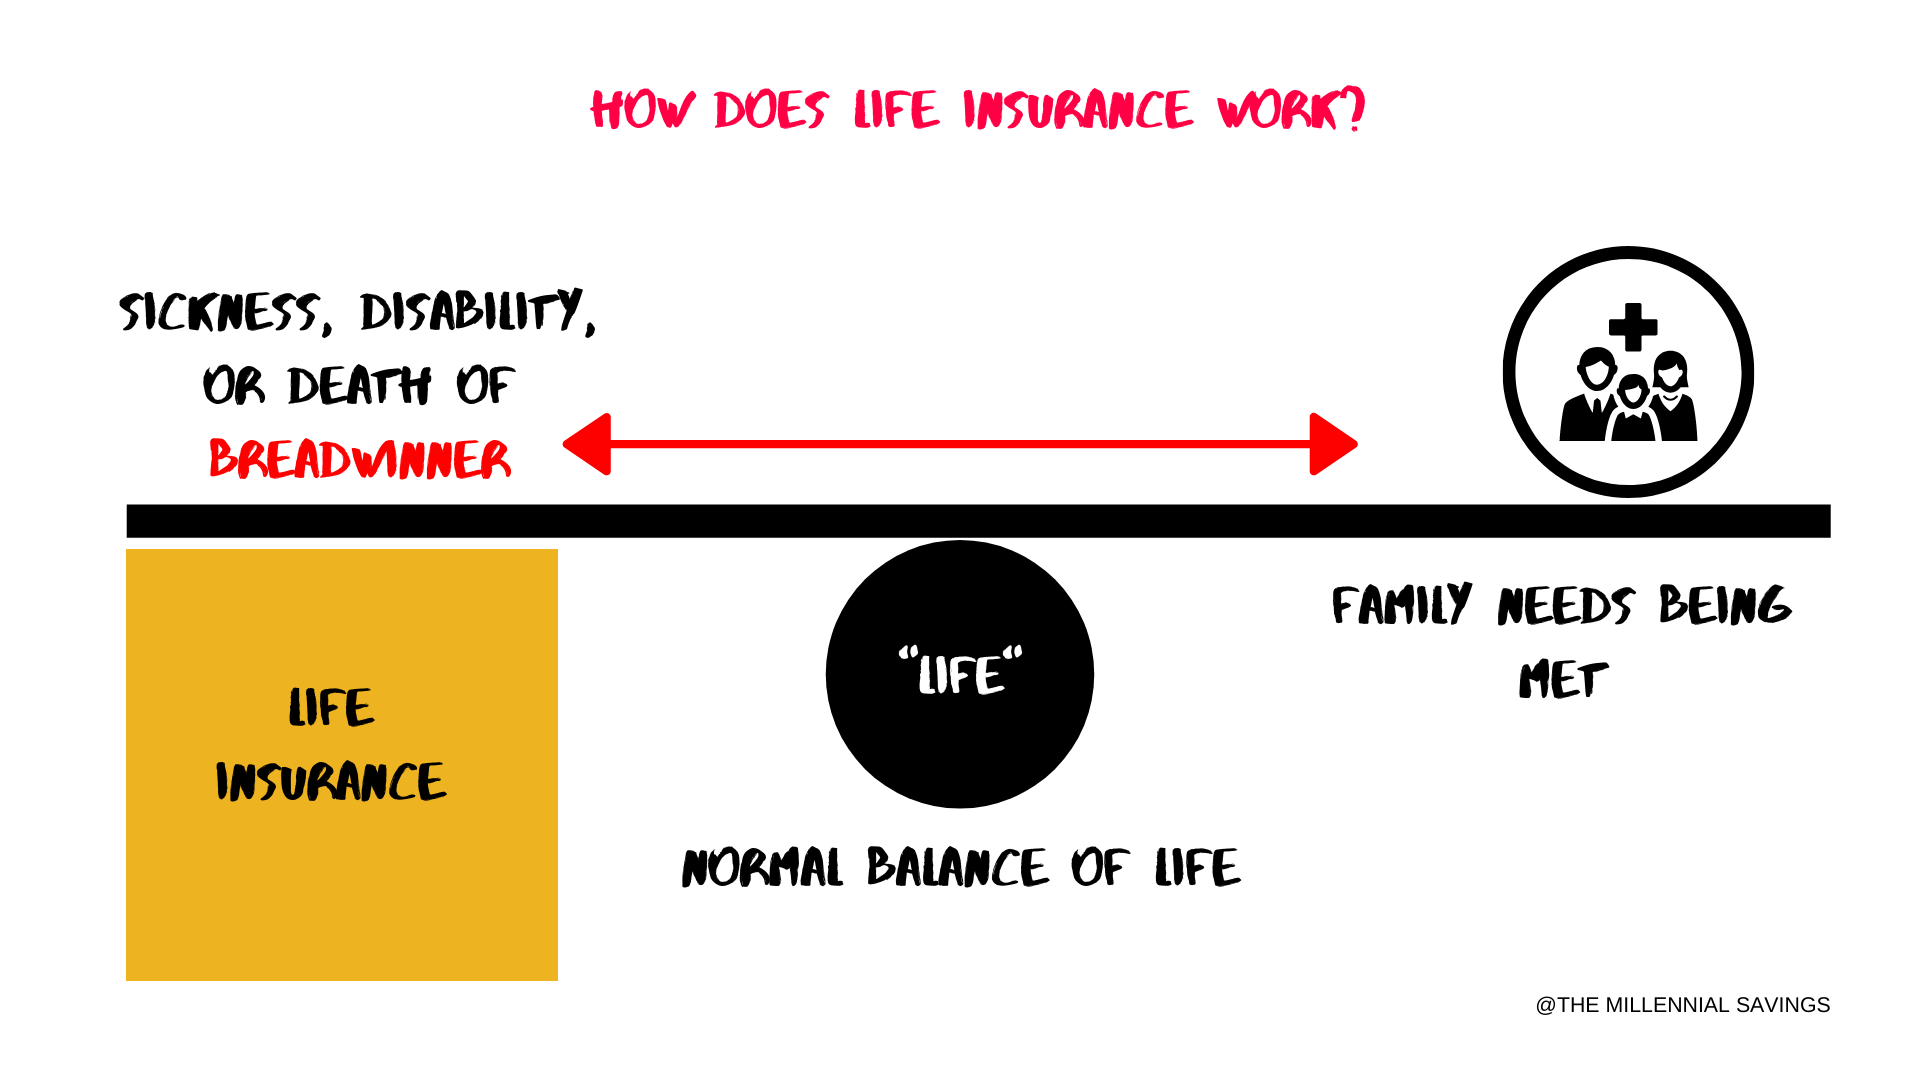 How Life Insurance Works in the Philippines